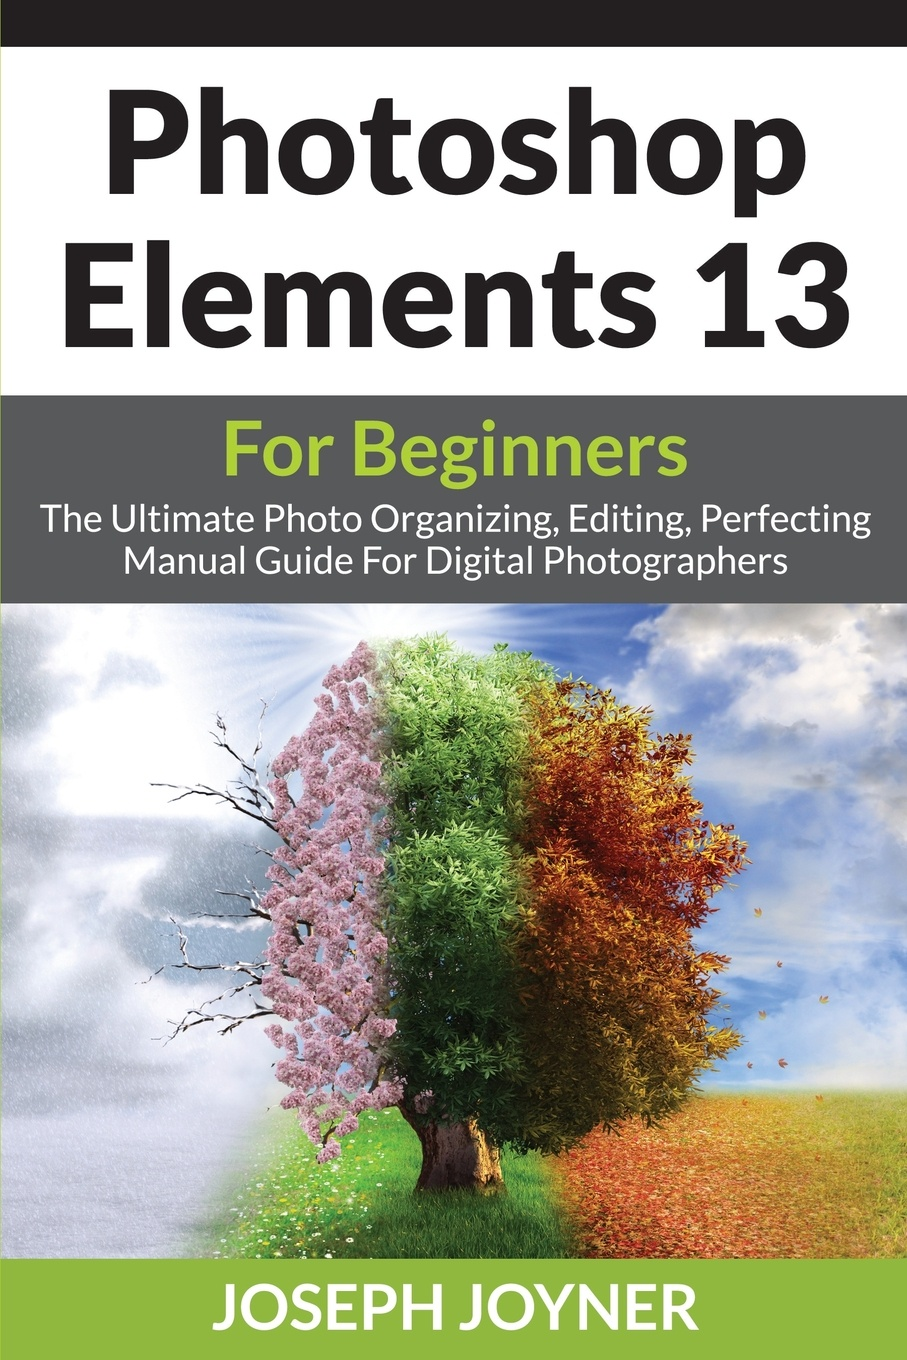 Joseph Joyner Photoshop Elements 13 For Beginners. The Ultimate Photo Organizing, Editing, Perfecting Manual Guide Digital Photographers